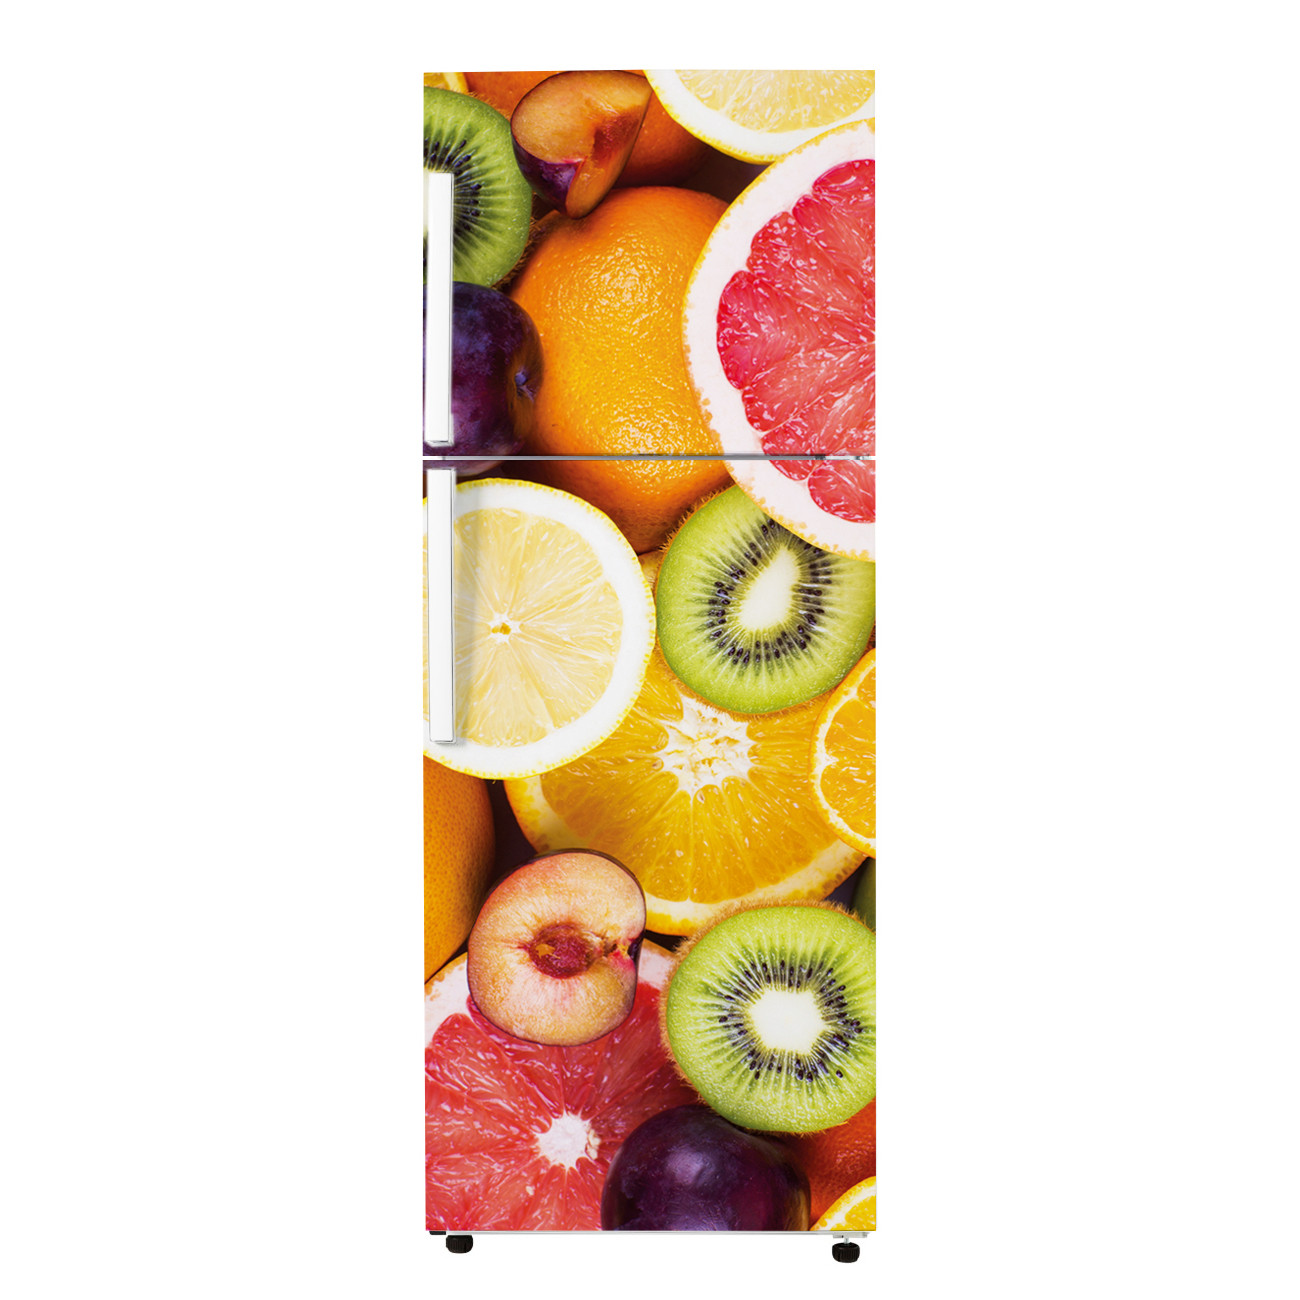 stickers frigo fruits 19 des prix 50 moins cher qu 39 en magasin. Black Bedroom Furniture Sets. Home Design Ideas